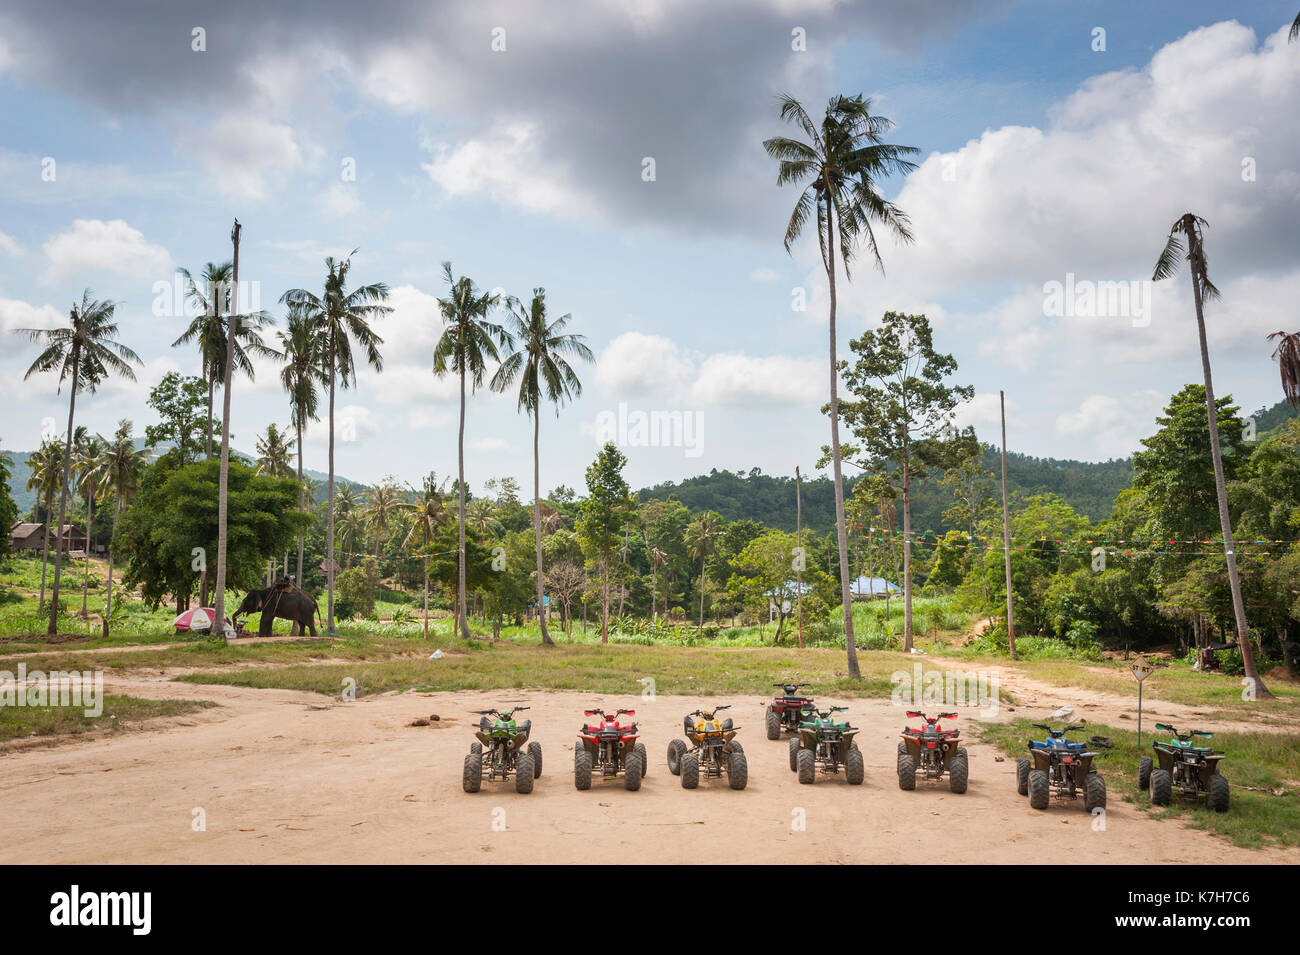 Quad bikes parked in a line with an elephant wandering in the background, Koh Samui, Thailand. - Stock Image